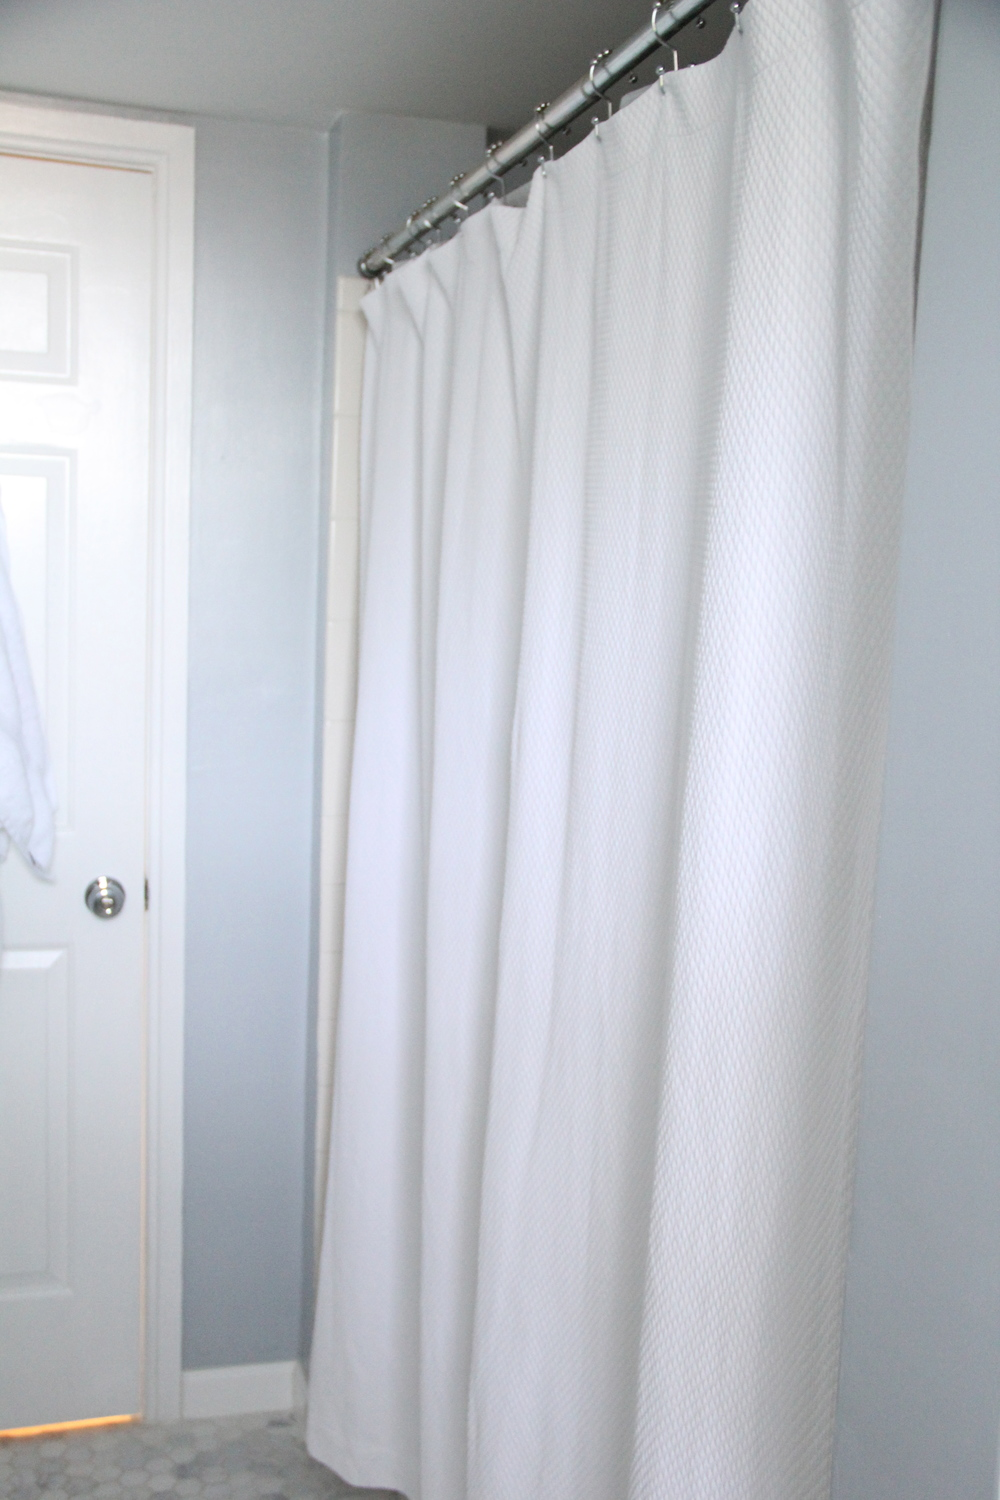 Shower Curtain.jpg